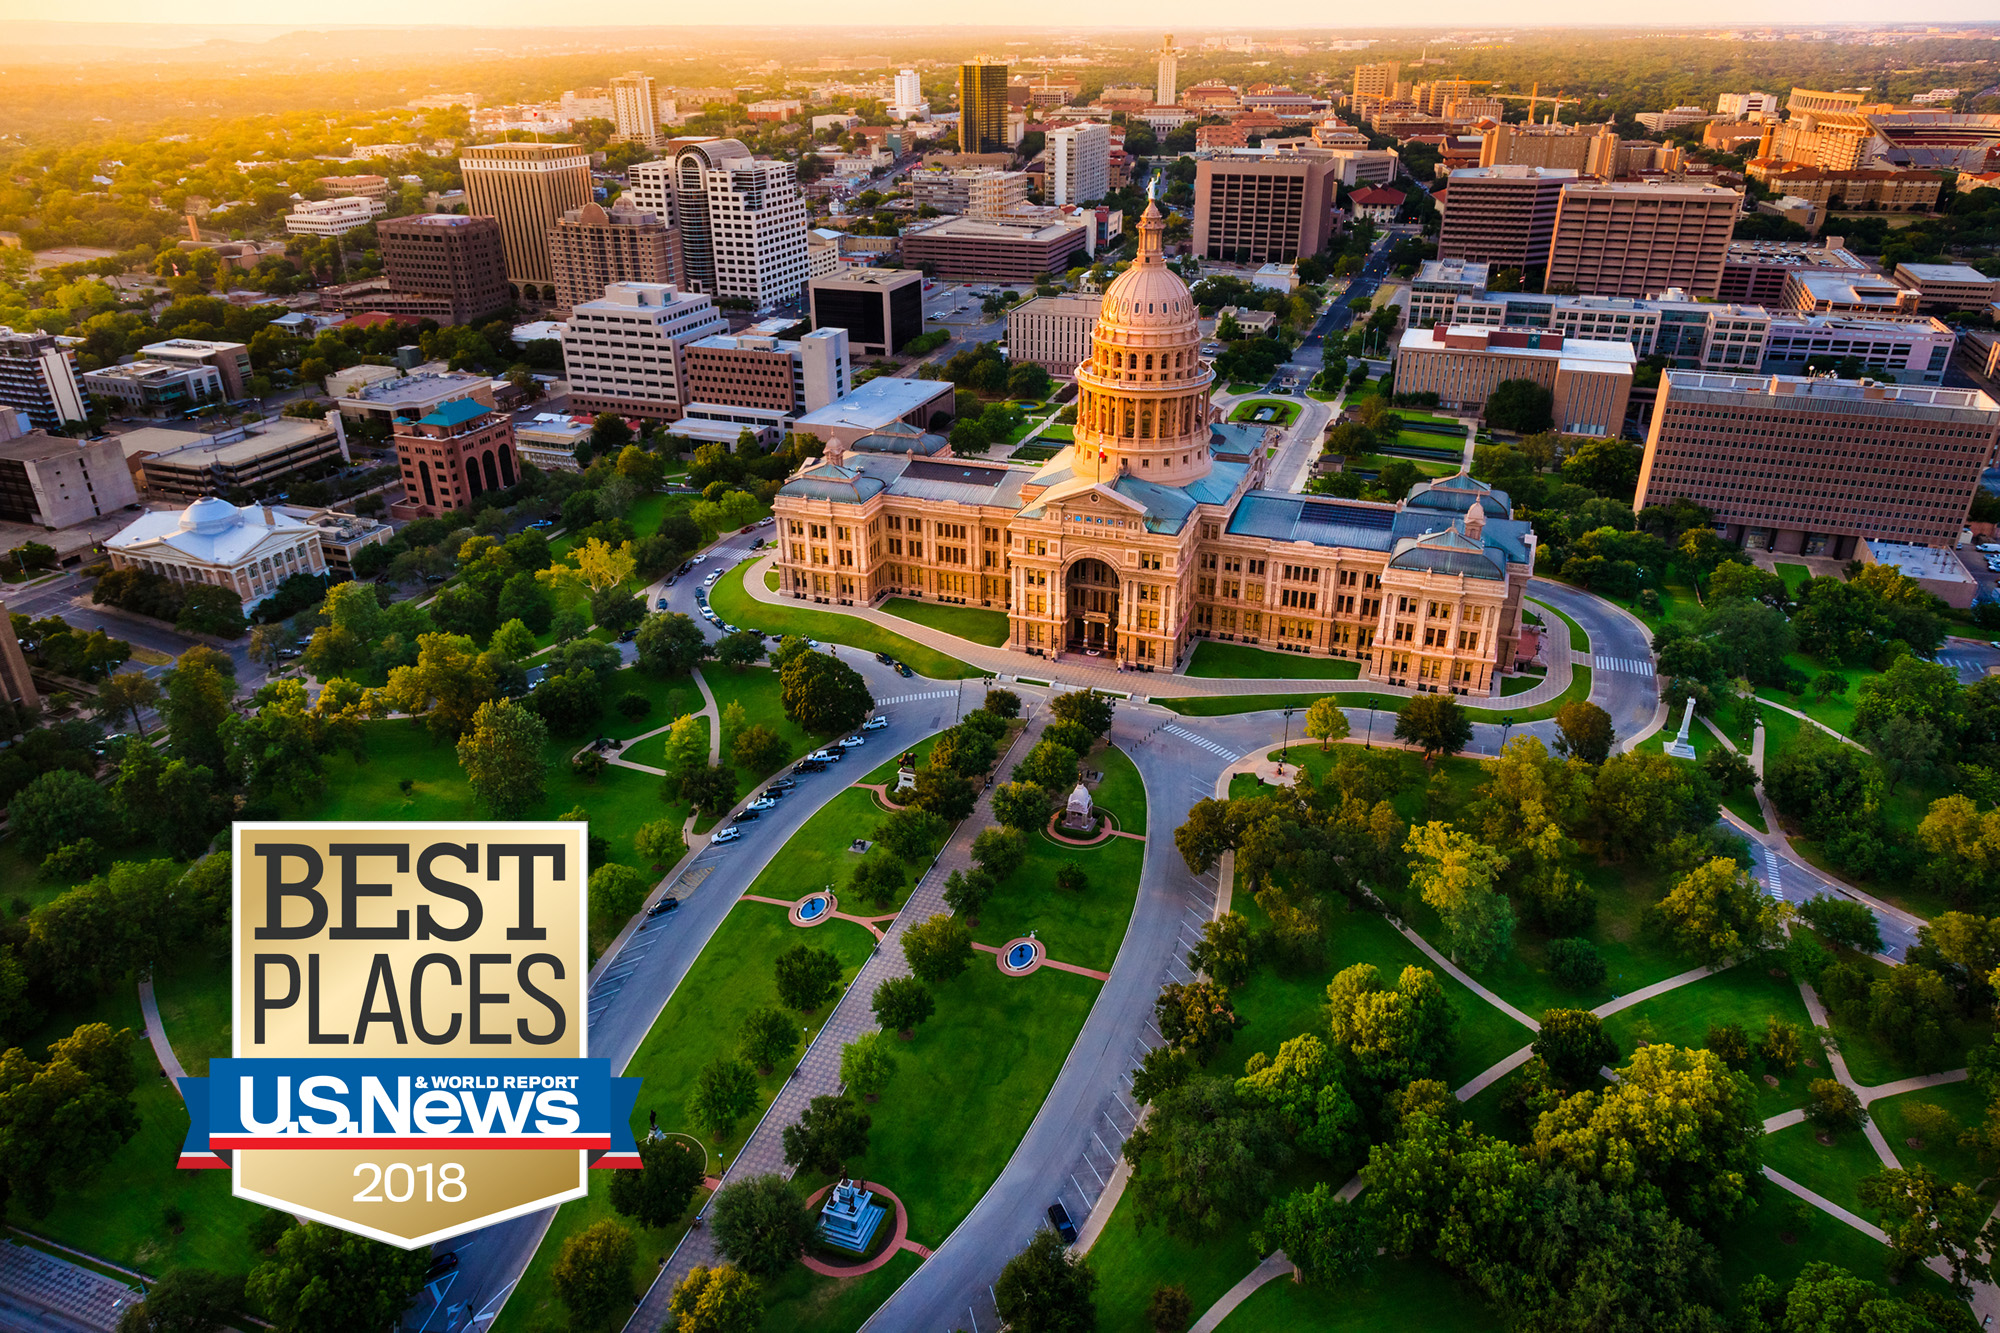 The 25 best places to live in the u s in 2018 real for Best places to live us